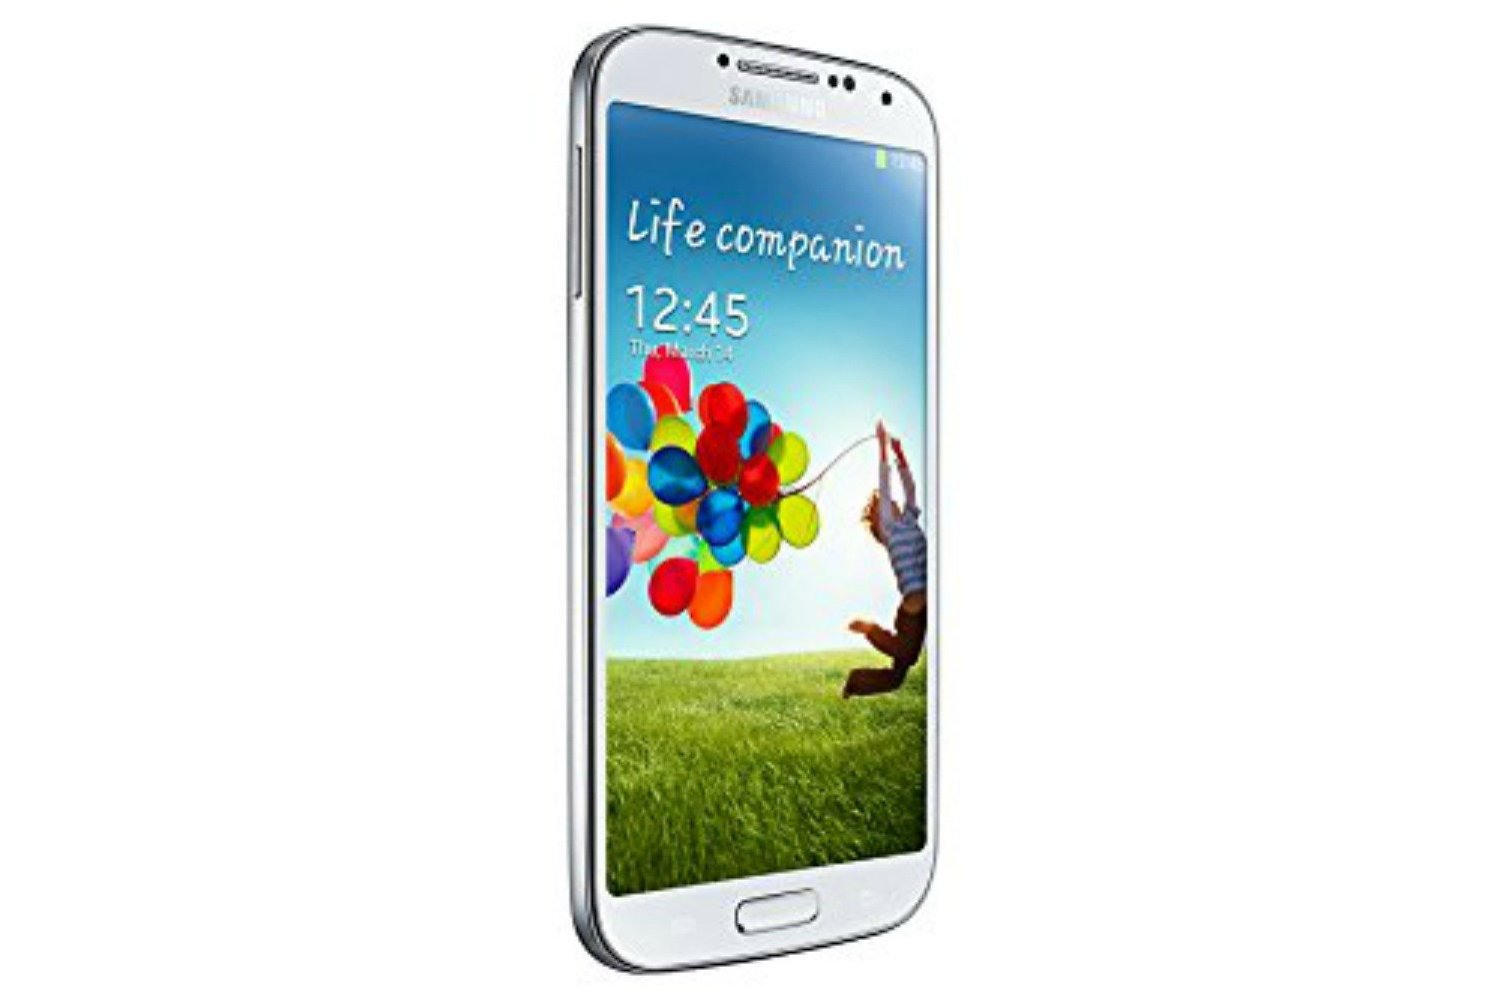 Unlocked Samsung Galaxy S4 16gb Android 422 Smartphone White Gt S5 Super Amoled Touchsreen 16m Colors Quad Core 25 Ghz Processor 2g Ram I9500